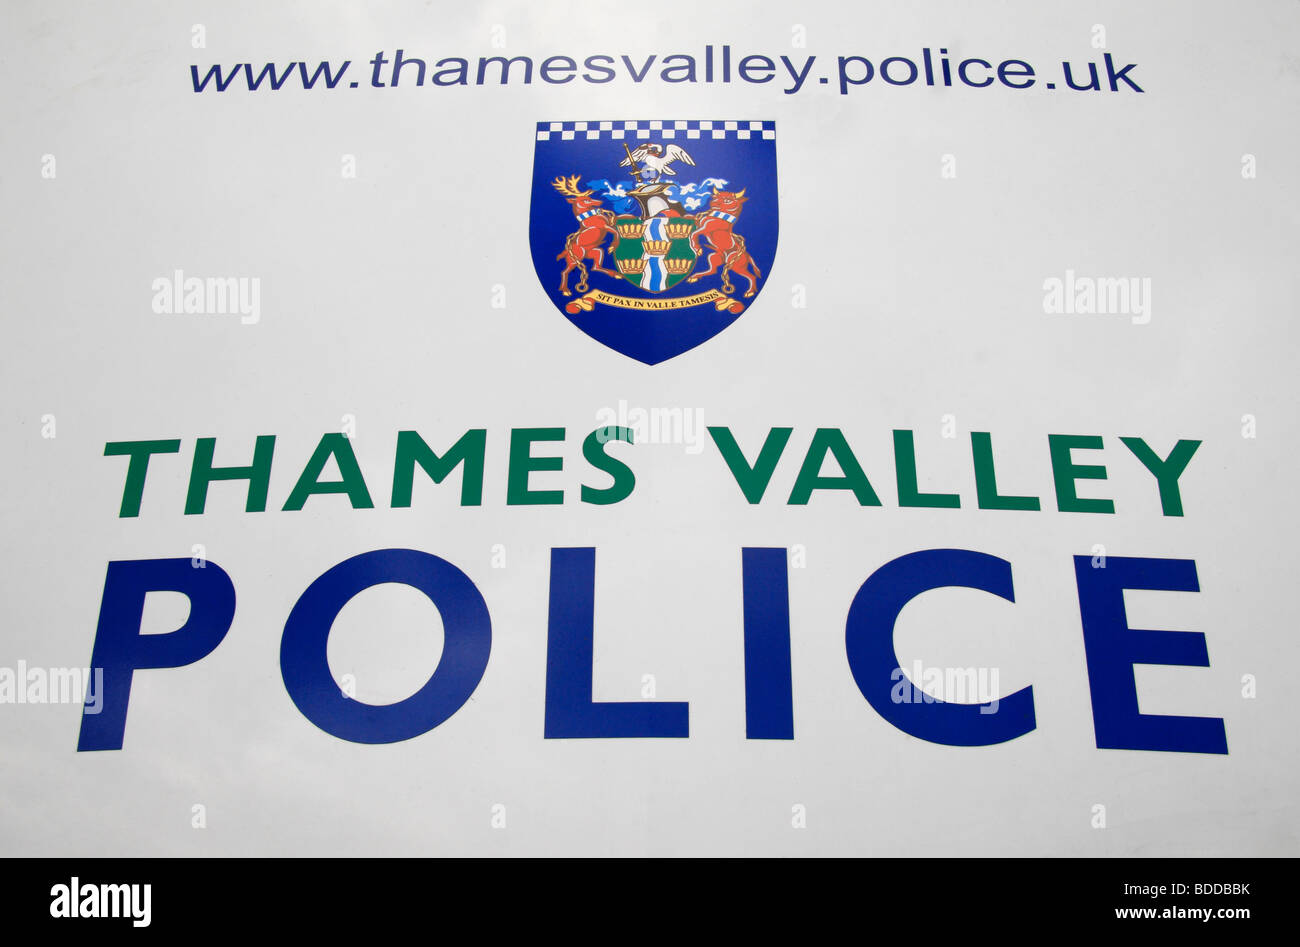 The insignia, web site, logo and badge of Thames Valley Police on the bonnet of a car in Datchet, Berkshire. - Stock Image